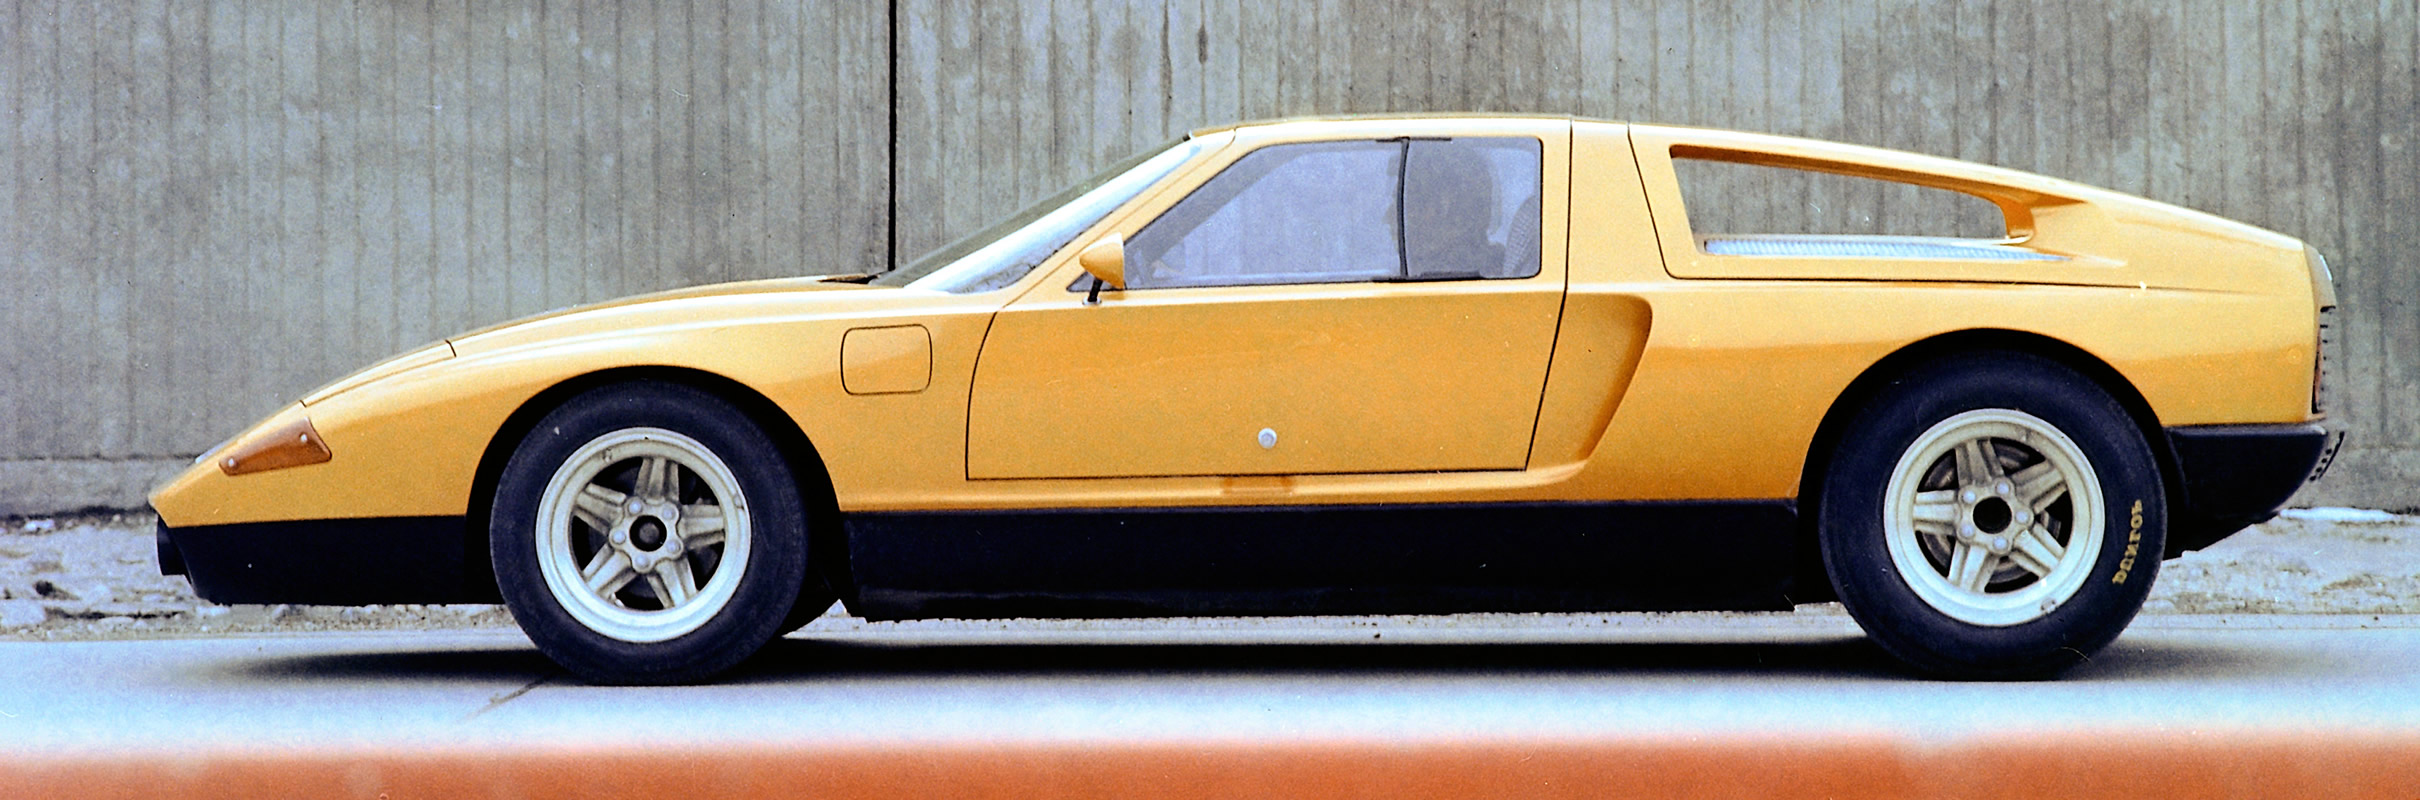 02. 1970 Mercedes-Benz C111-II